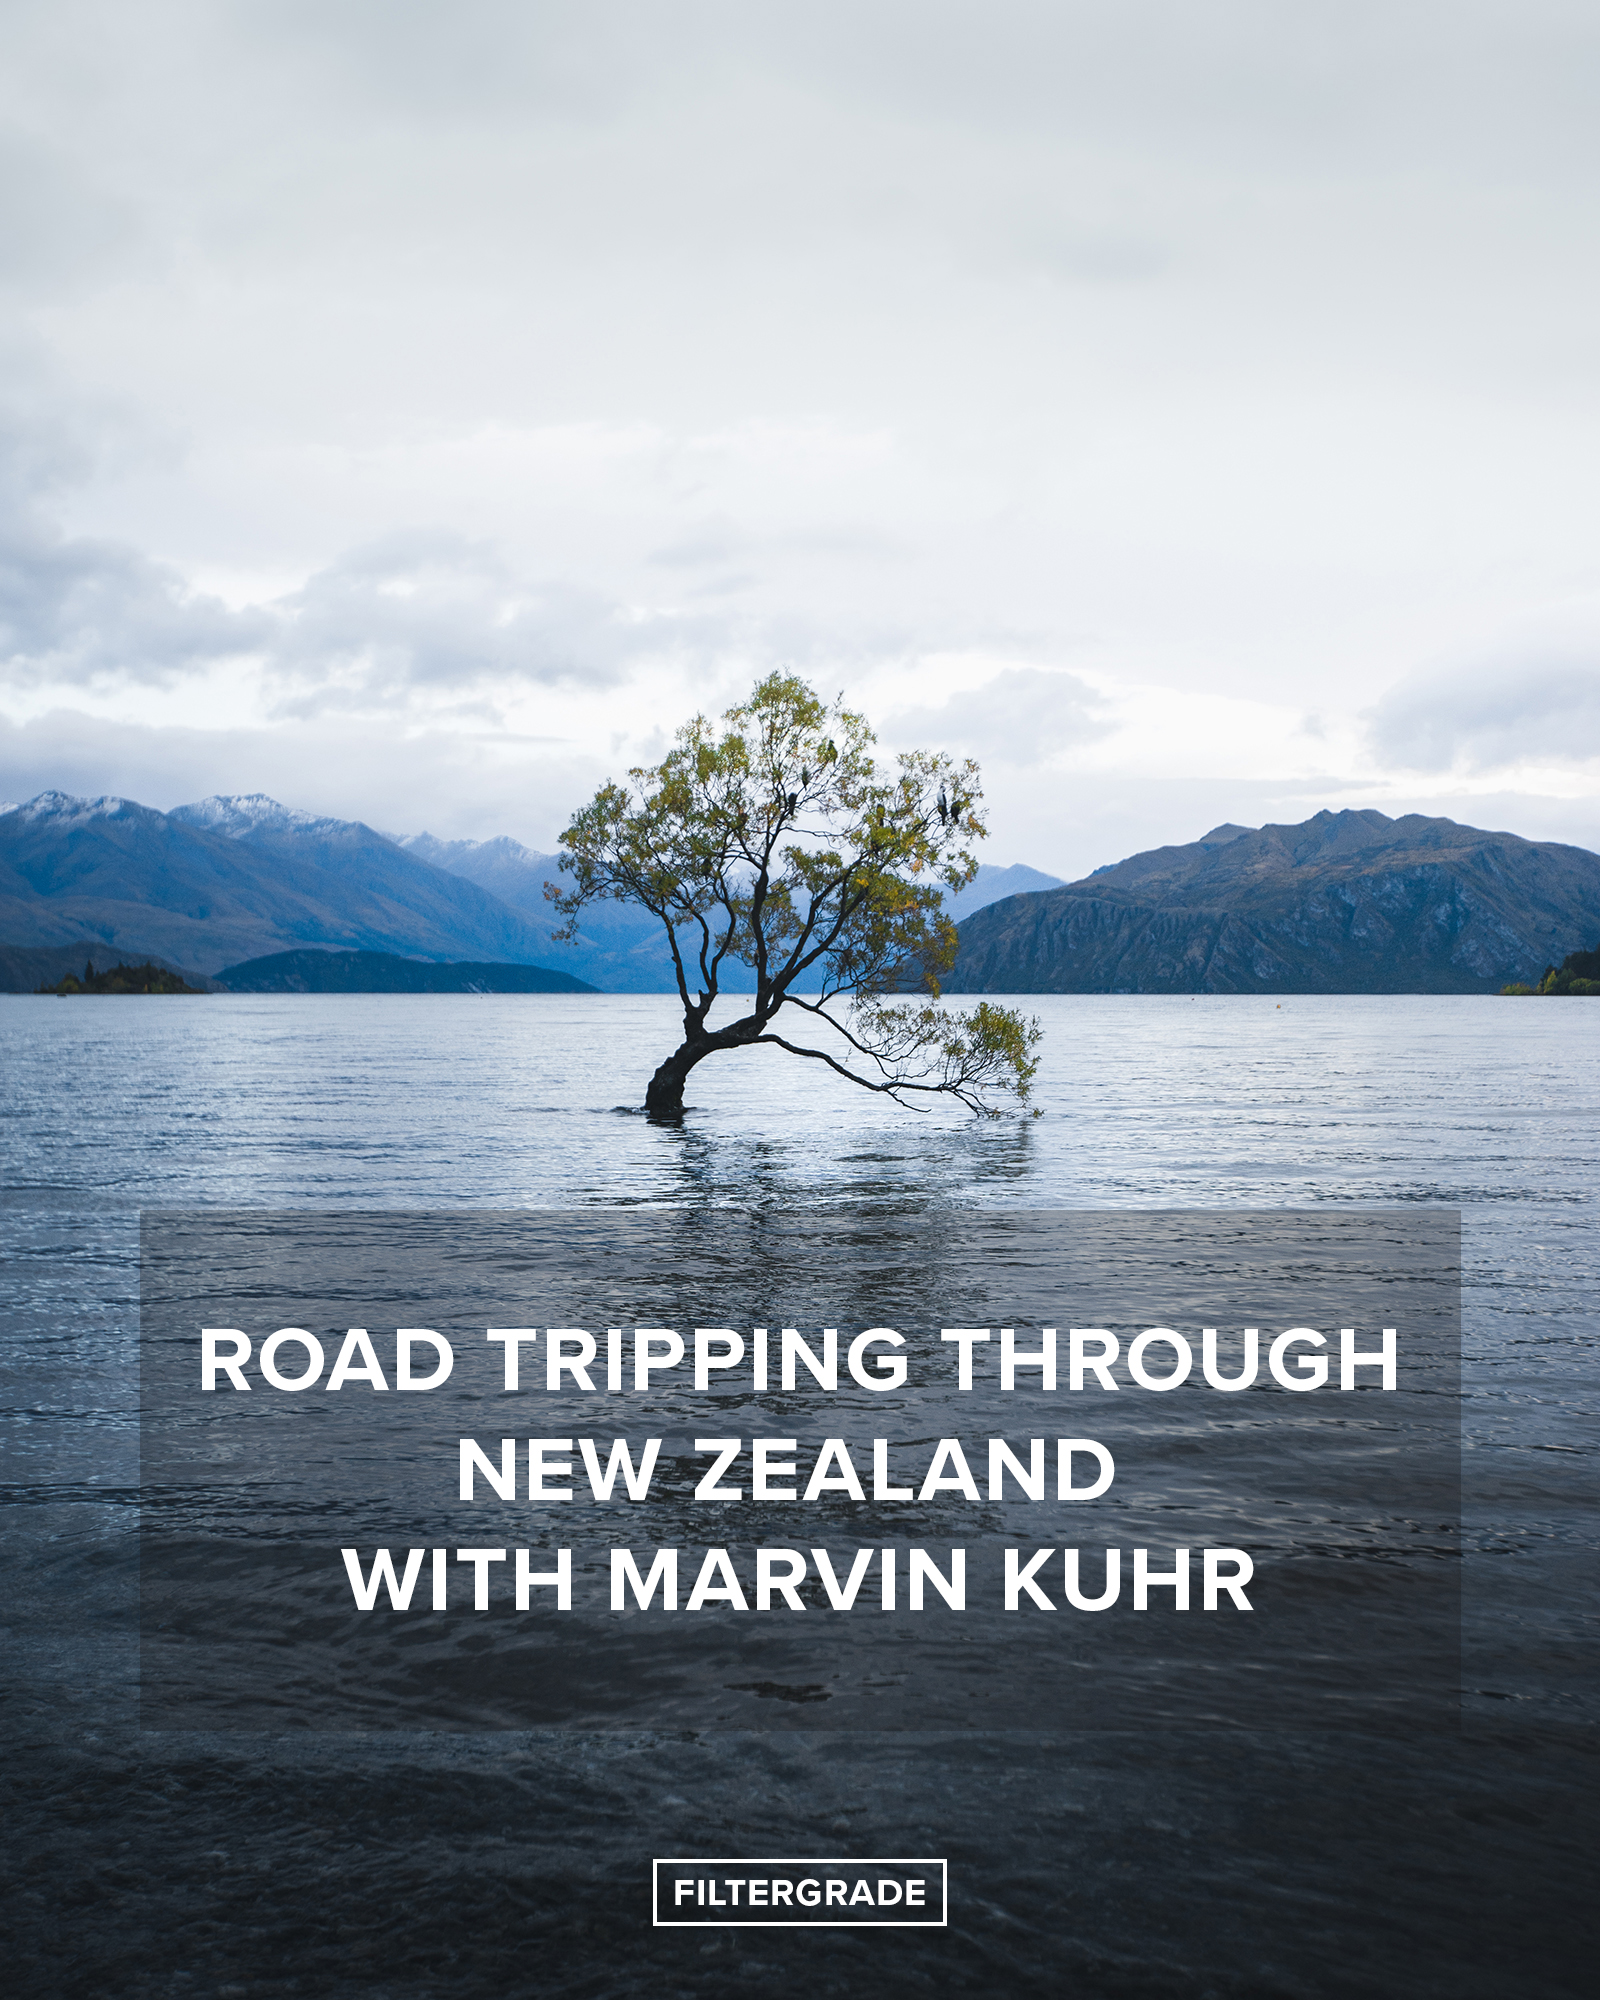 Road Tripping New Zealand with Marvin Kuhr - FilterGrade